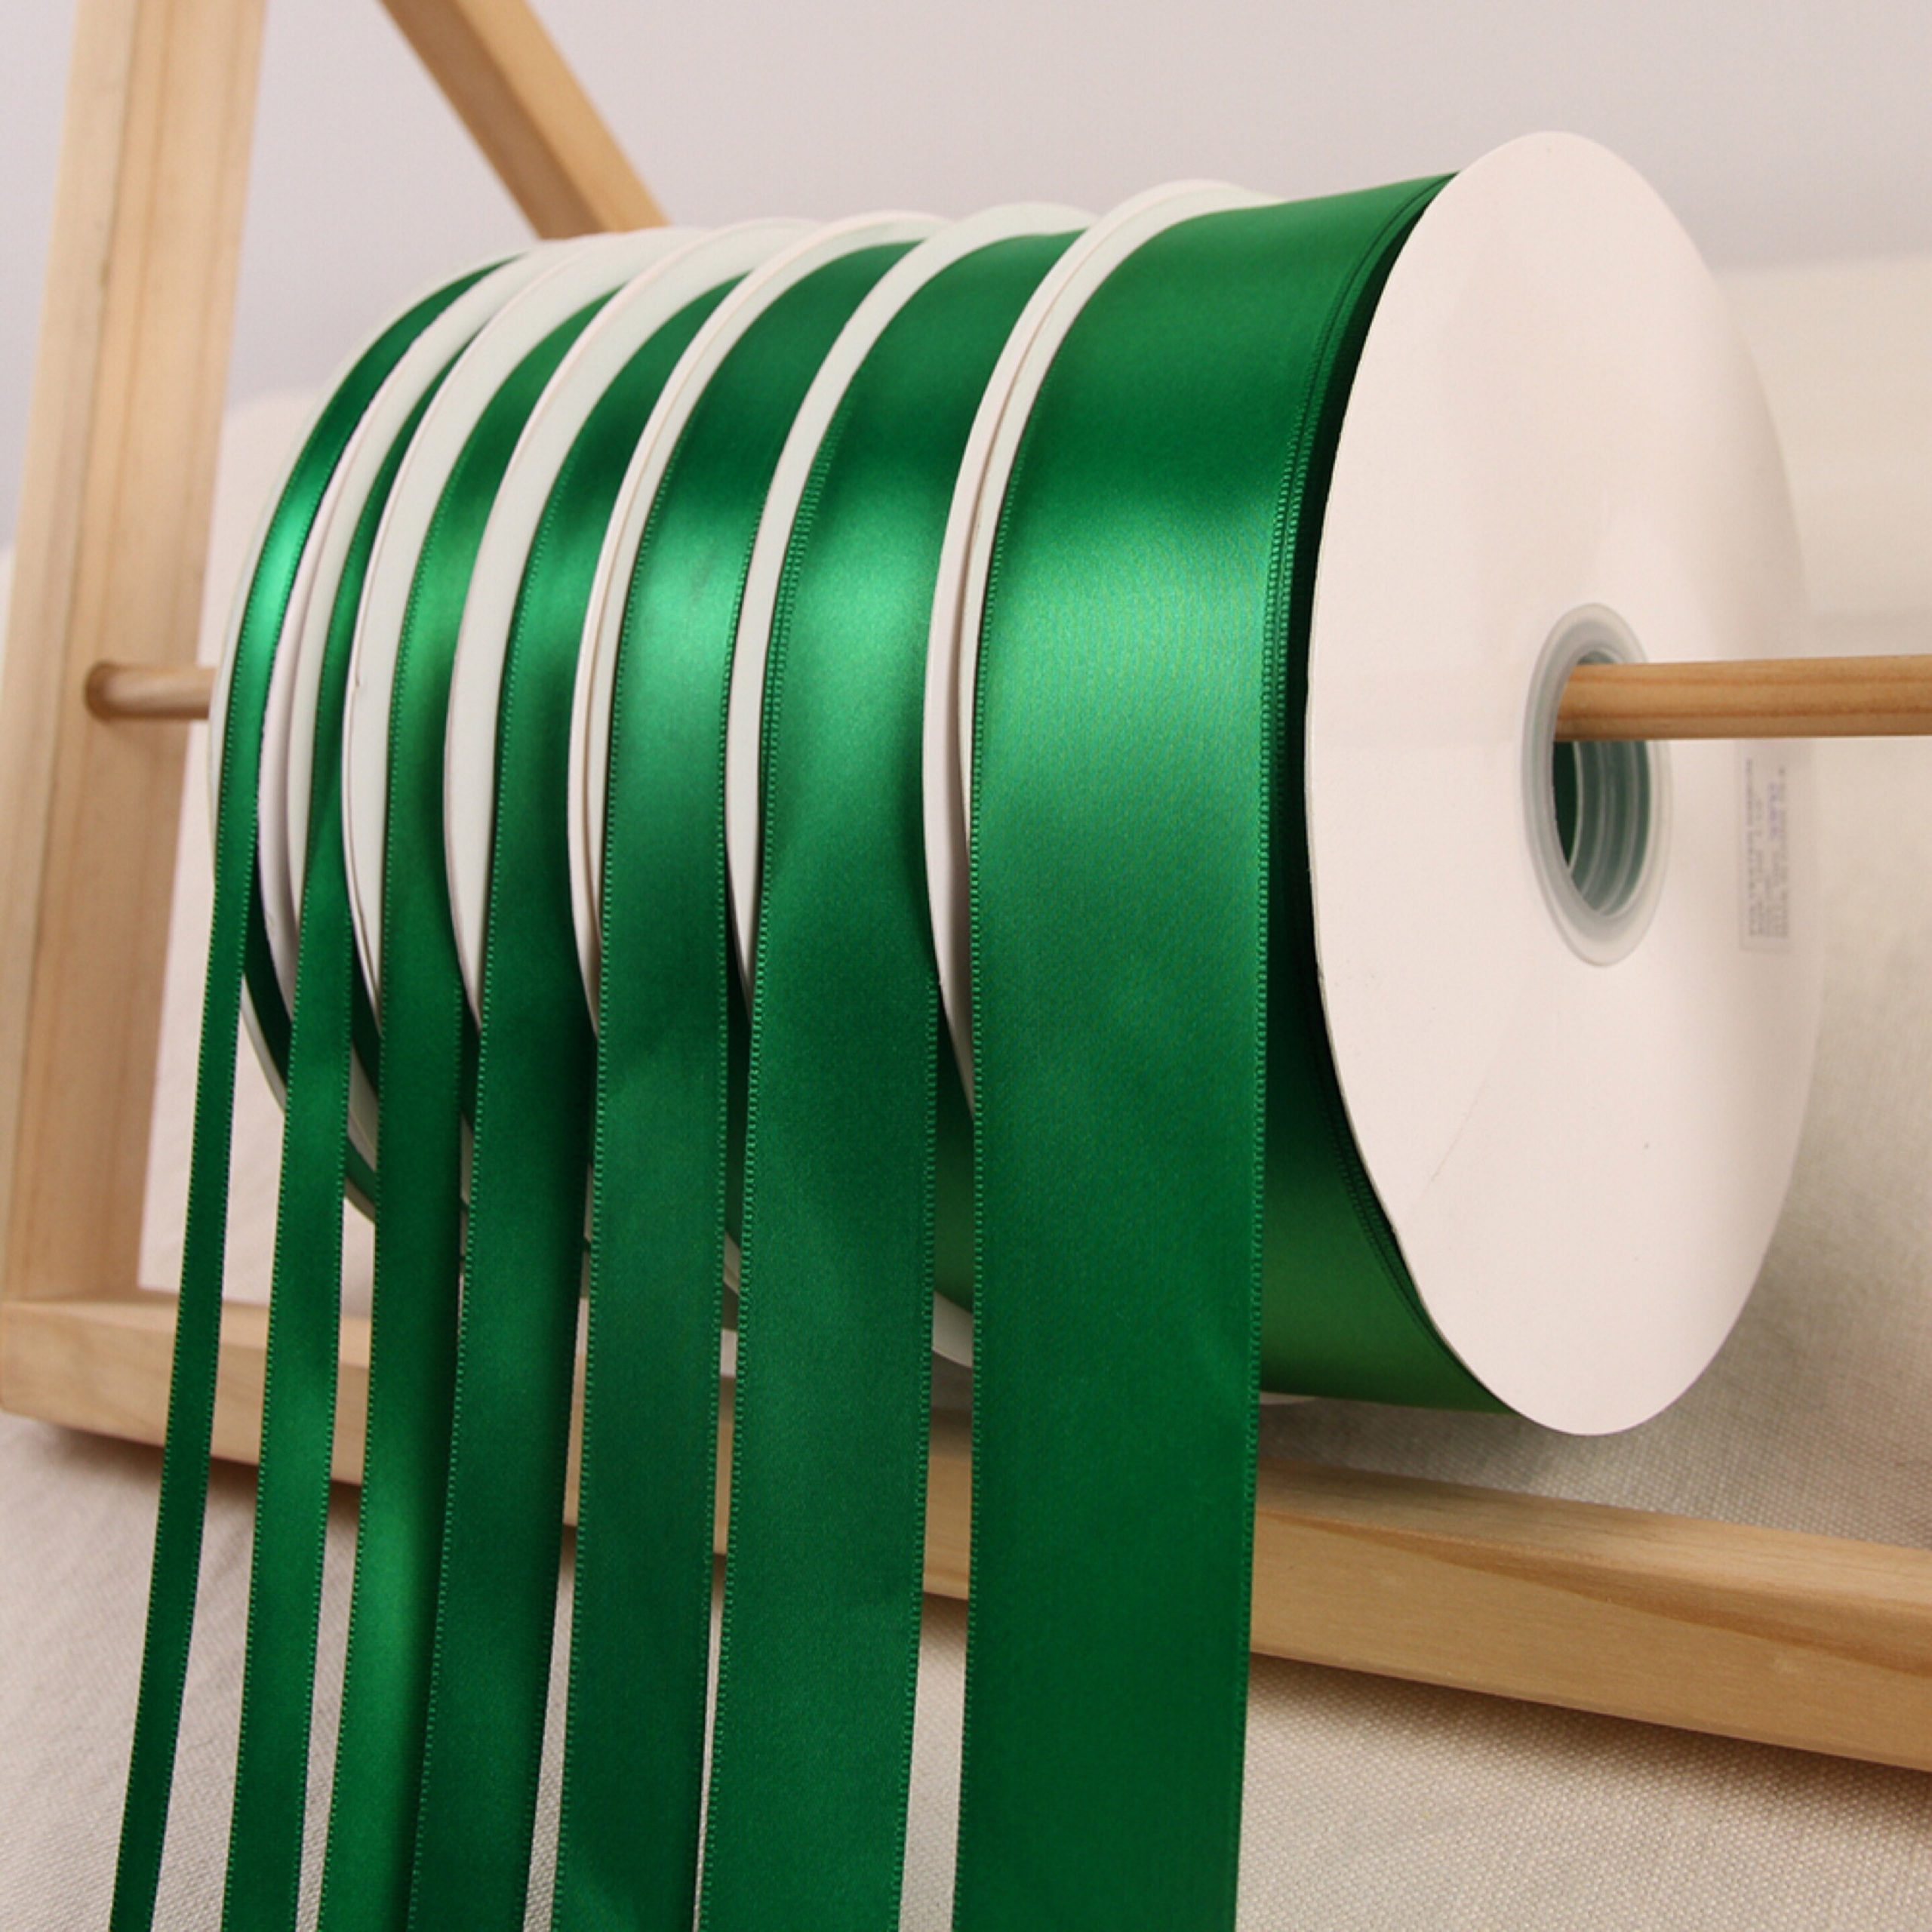 Emerald Green Satin Ribbon Roll Wholesale Christmas Gift Wrapping Wedding Party Favors Chair Decorations Tags Box Ribbons